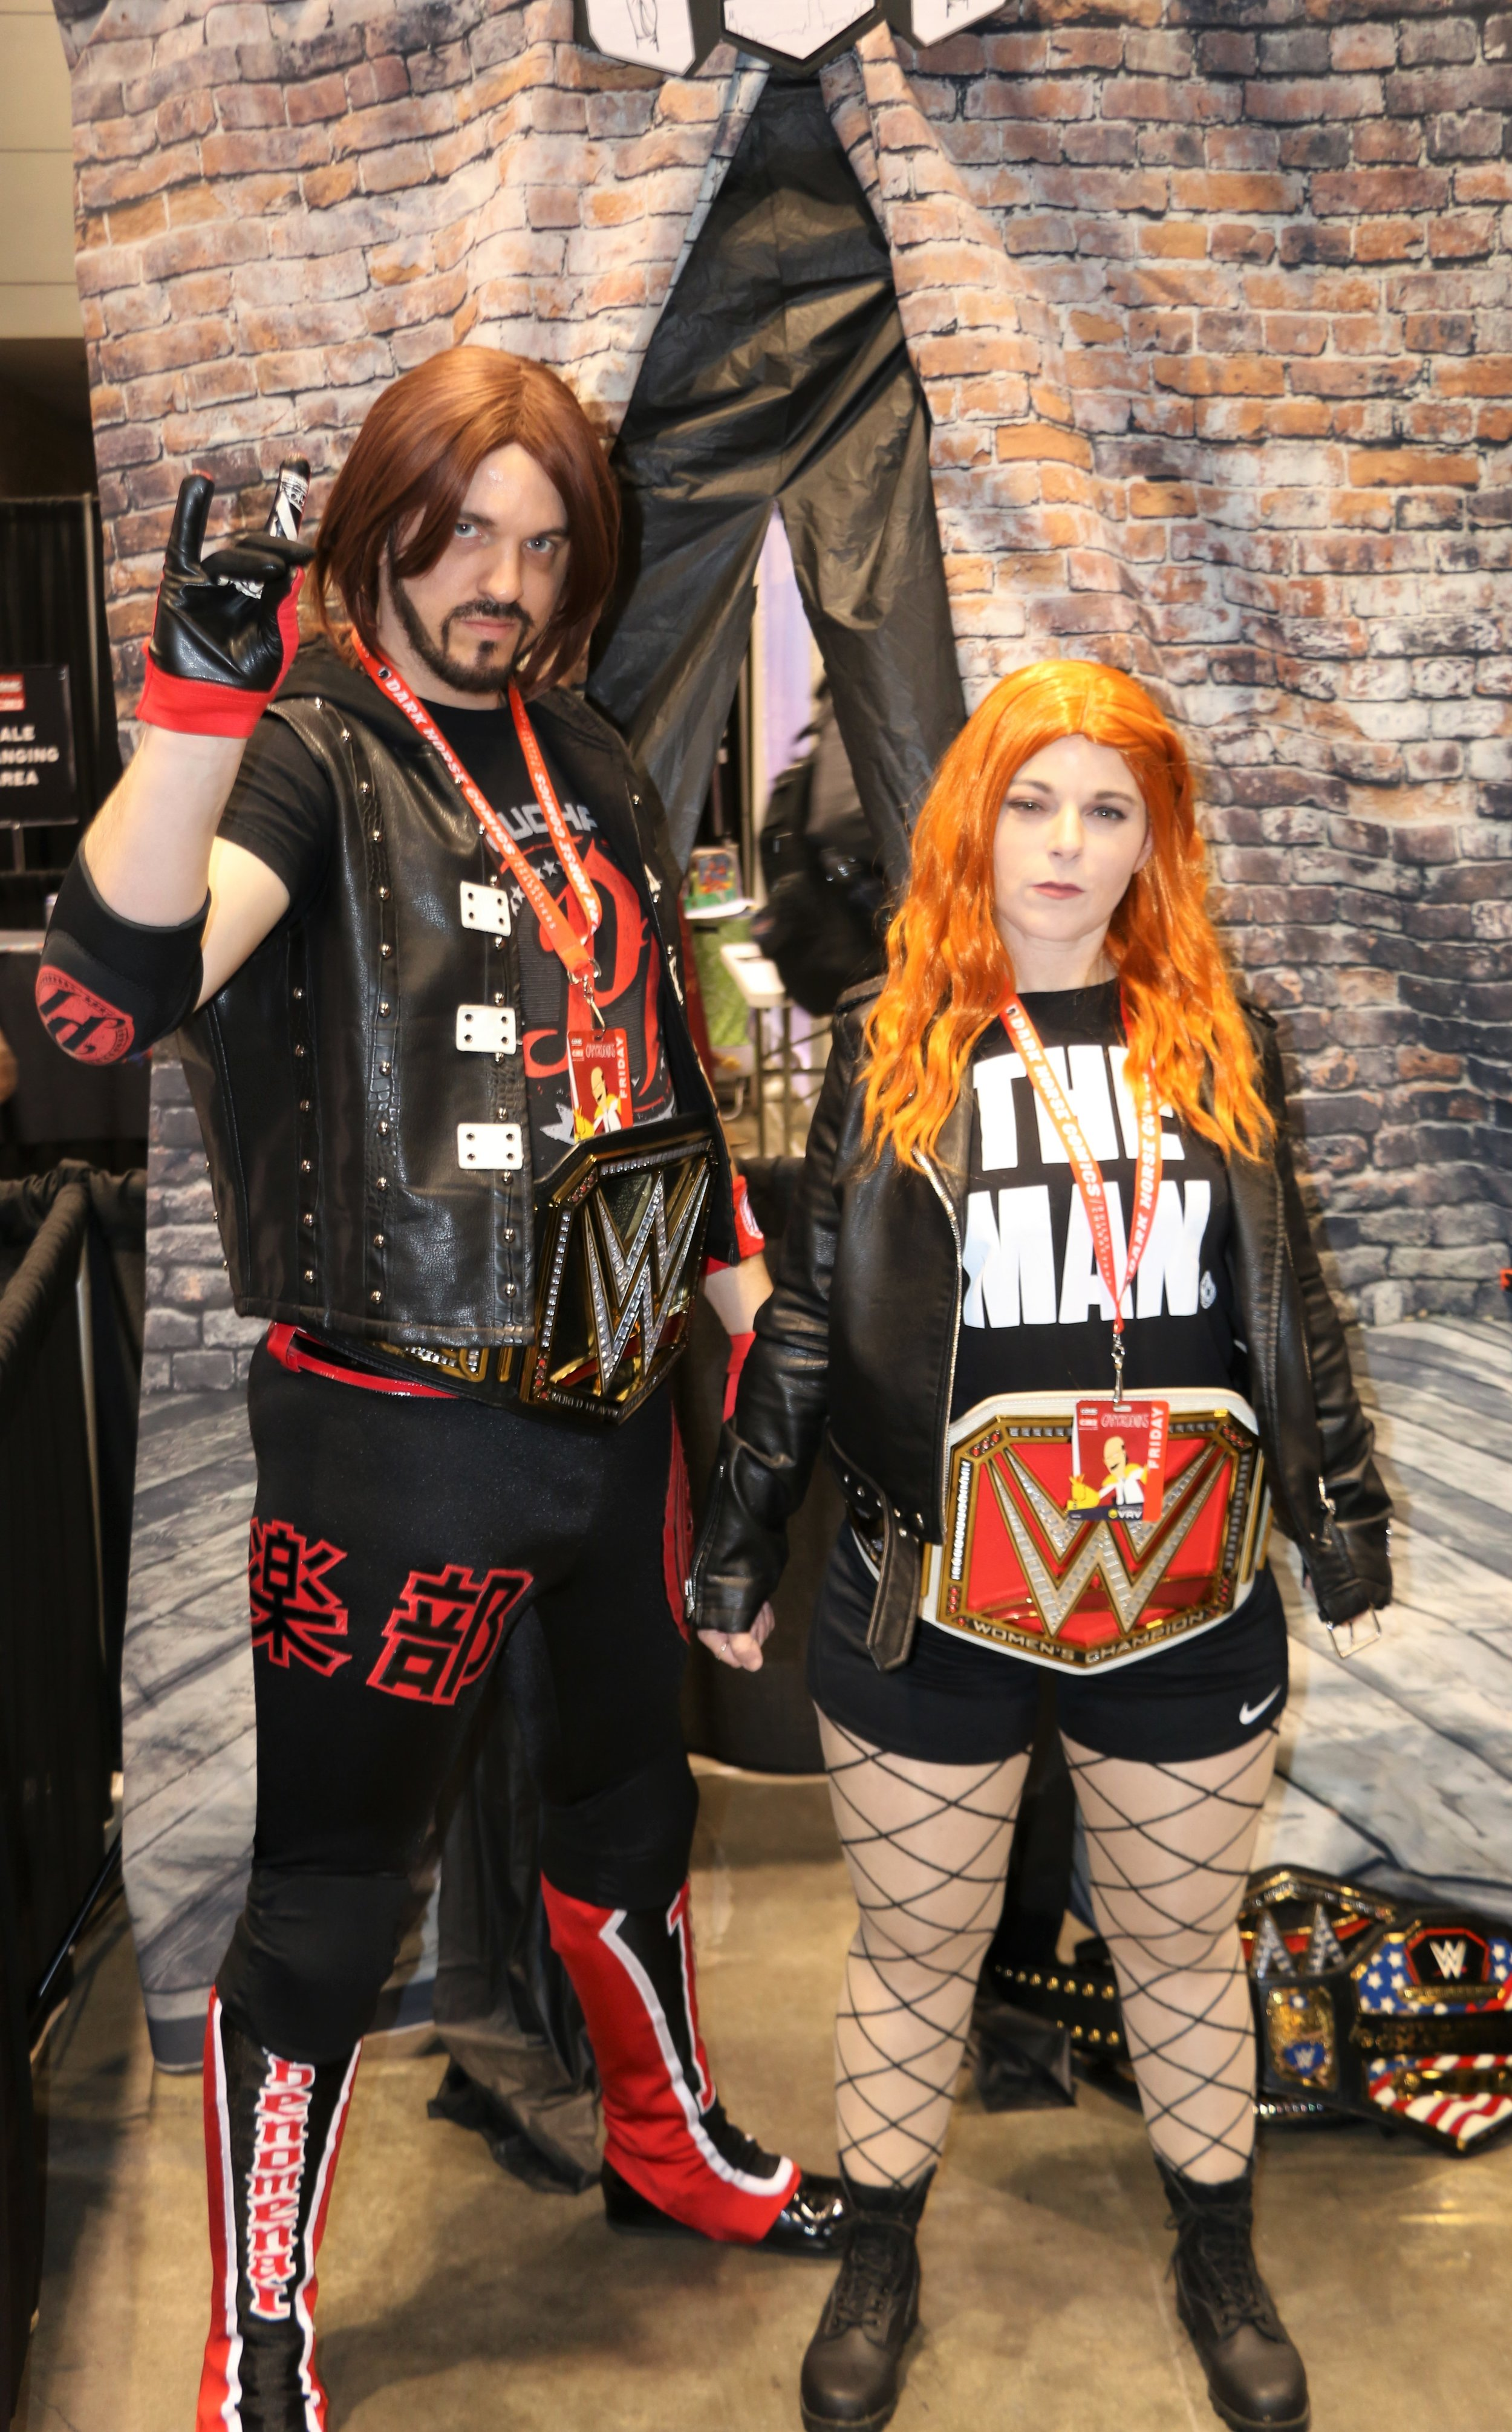 AJ Styles and Becky Lynch cosplayers at the Two Sweet Cosplay booth.